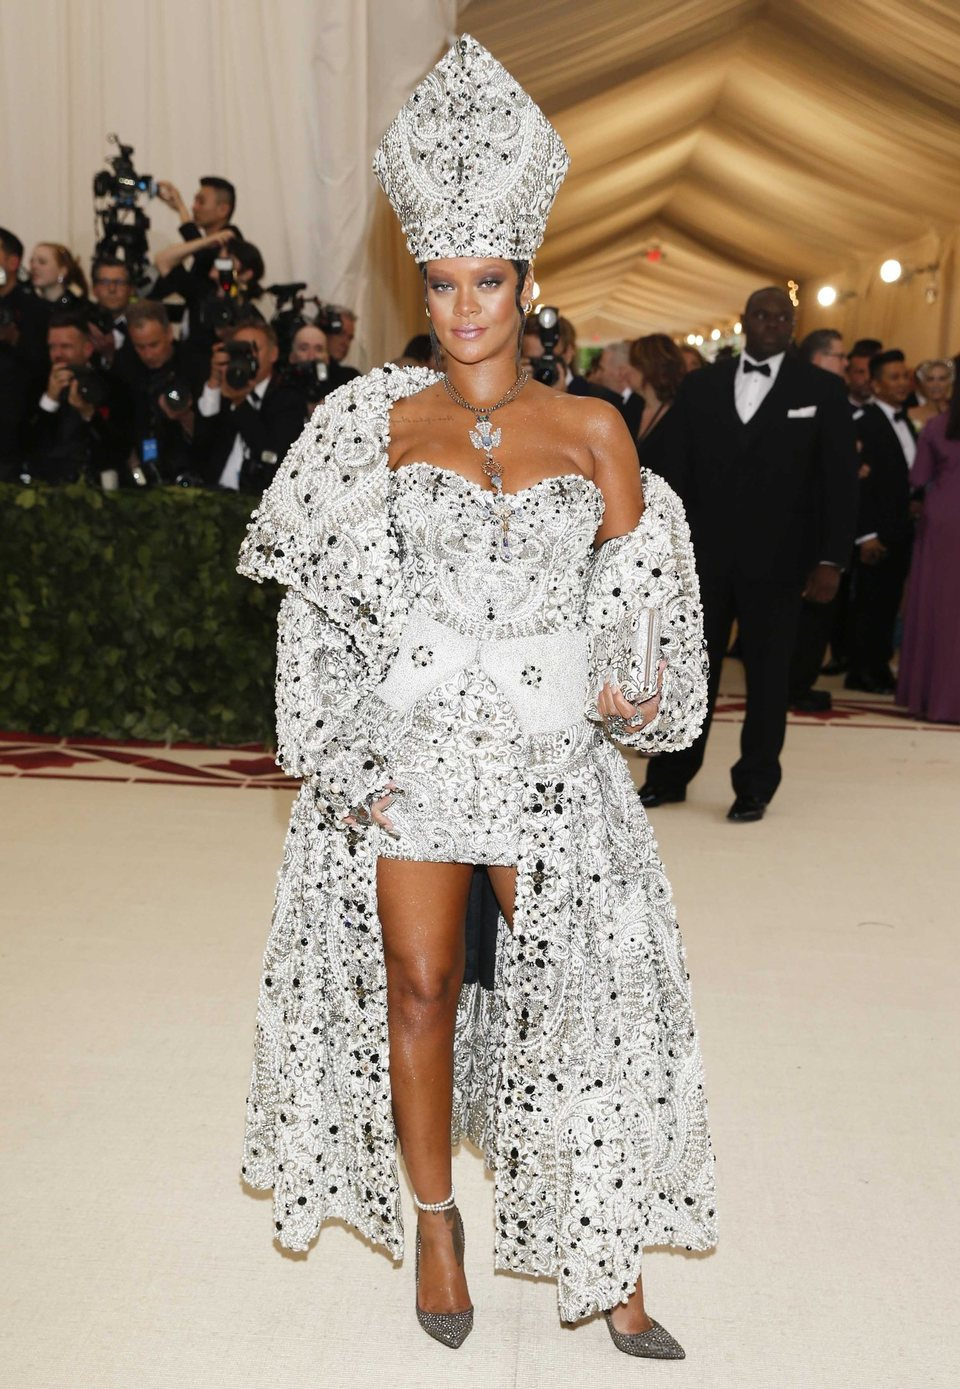 Rihanna at the Met Gala 2018